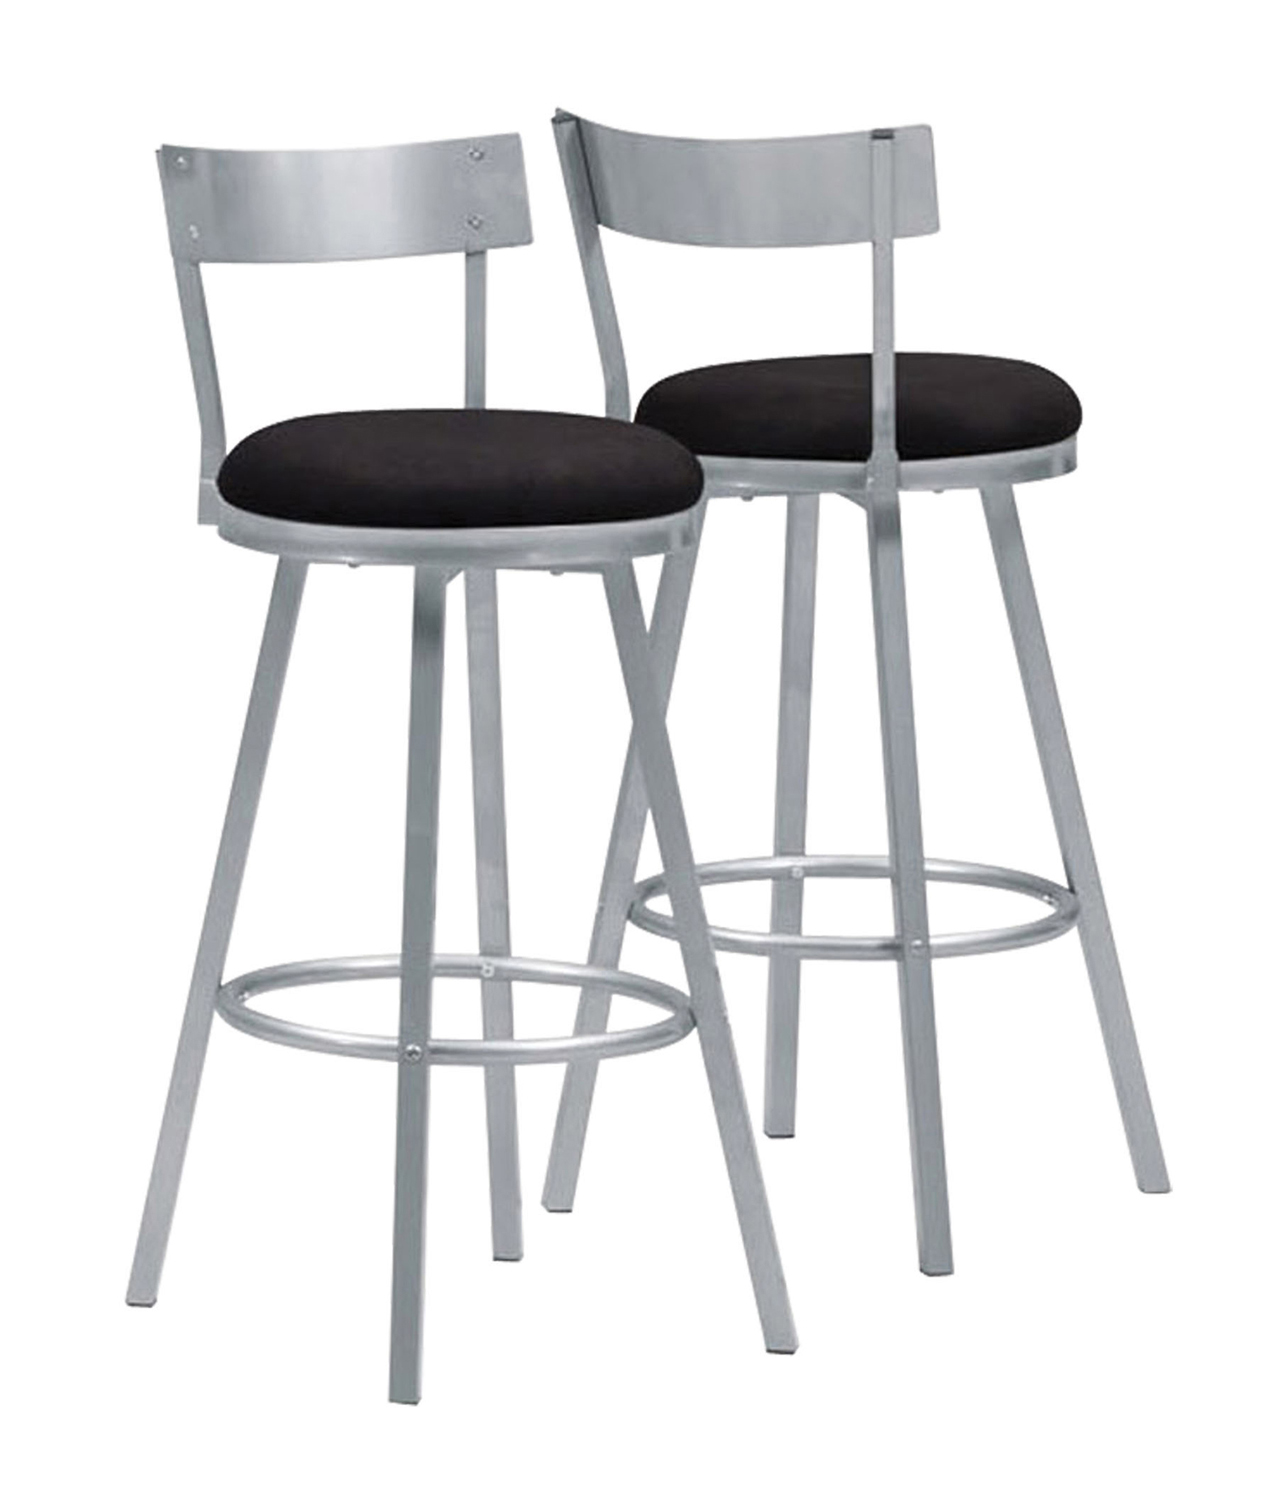 "(Open Box) Barstool - 2 Pieces / 43""H / Swivel / Silver Metal"